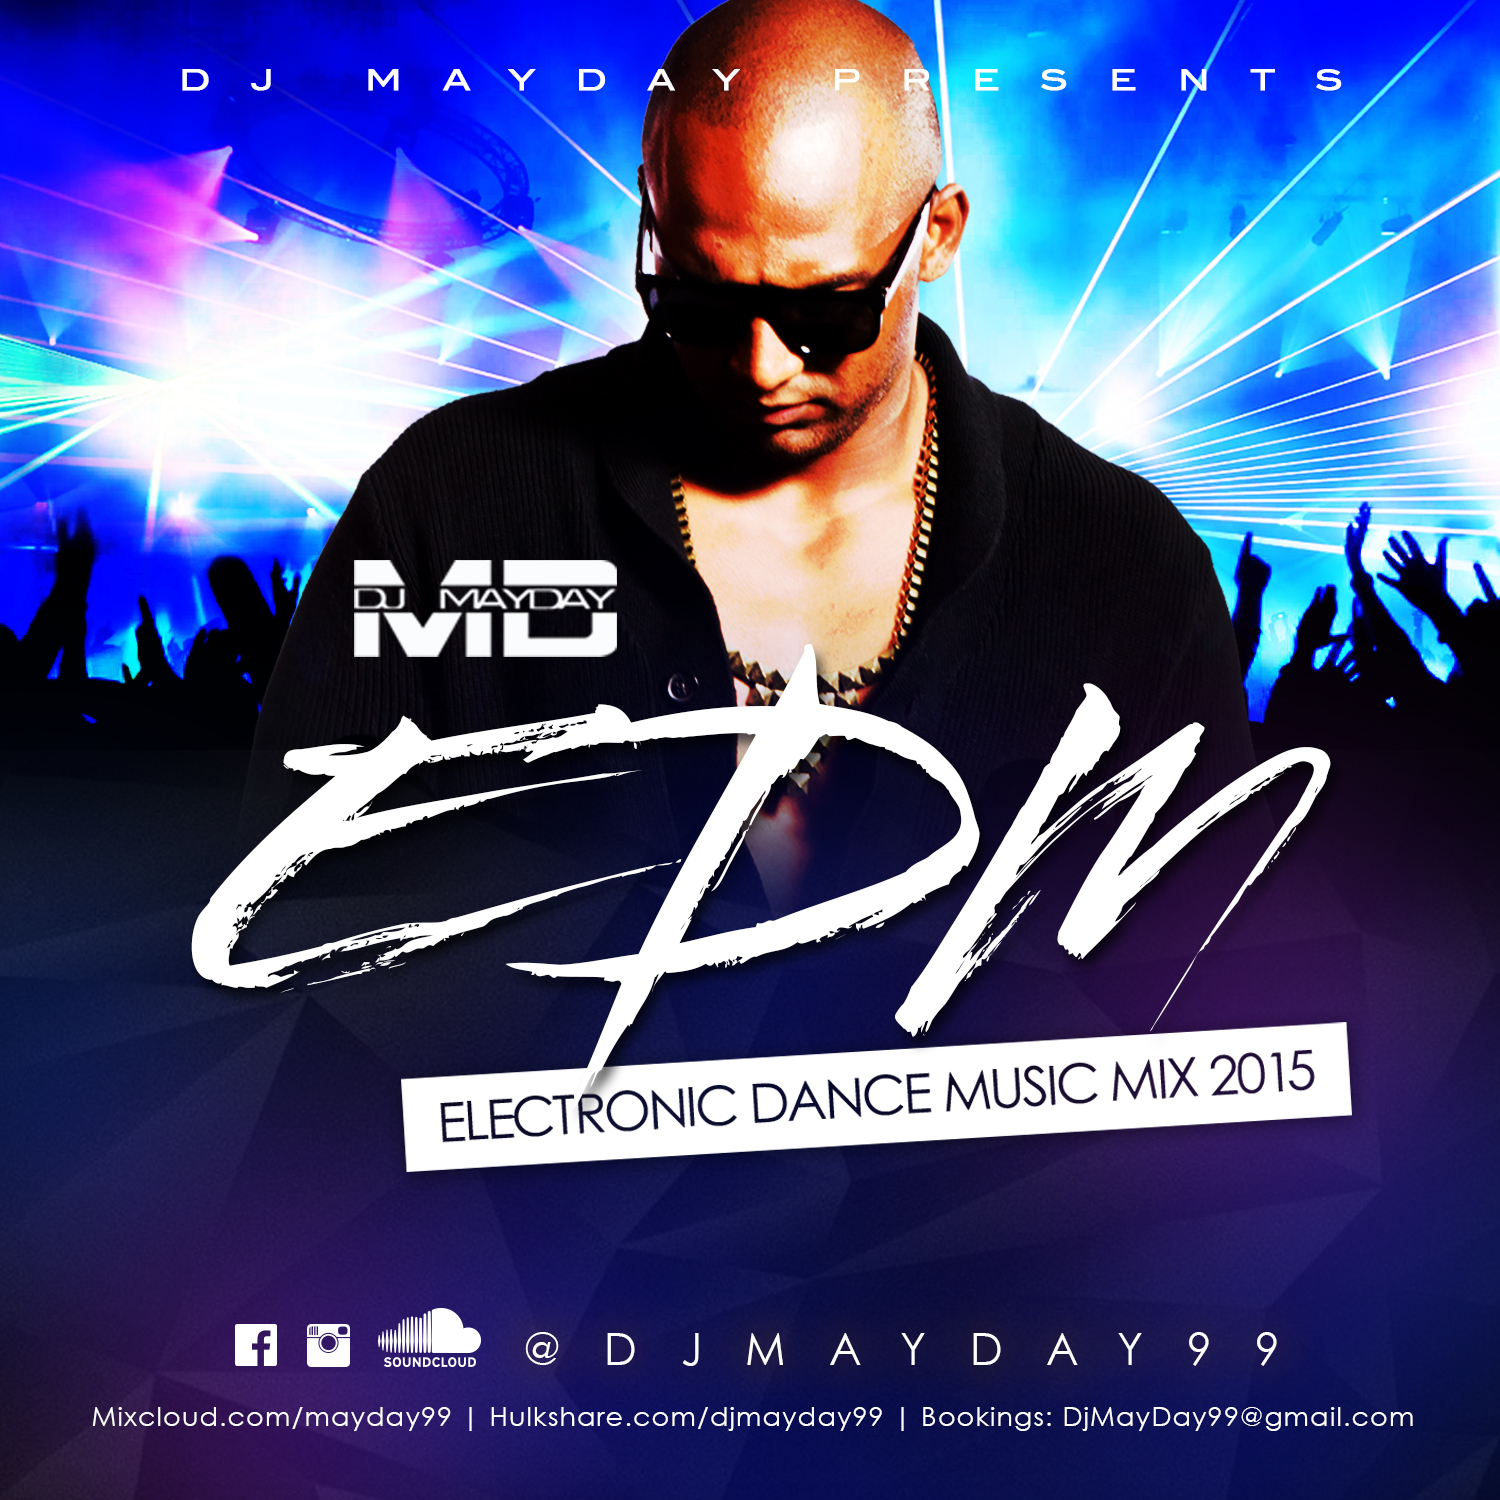 DJ MayDay Presents Electronic Dance Music Mix 2015 By